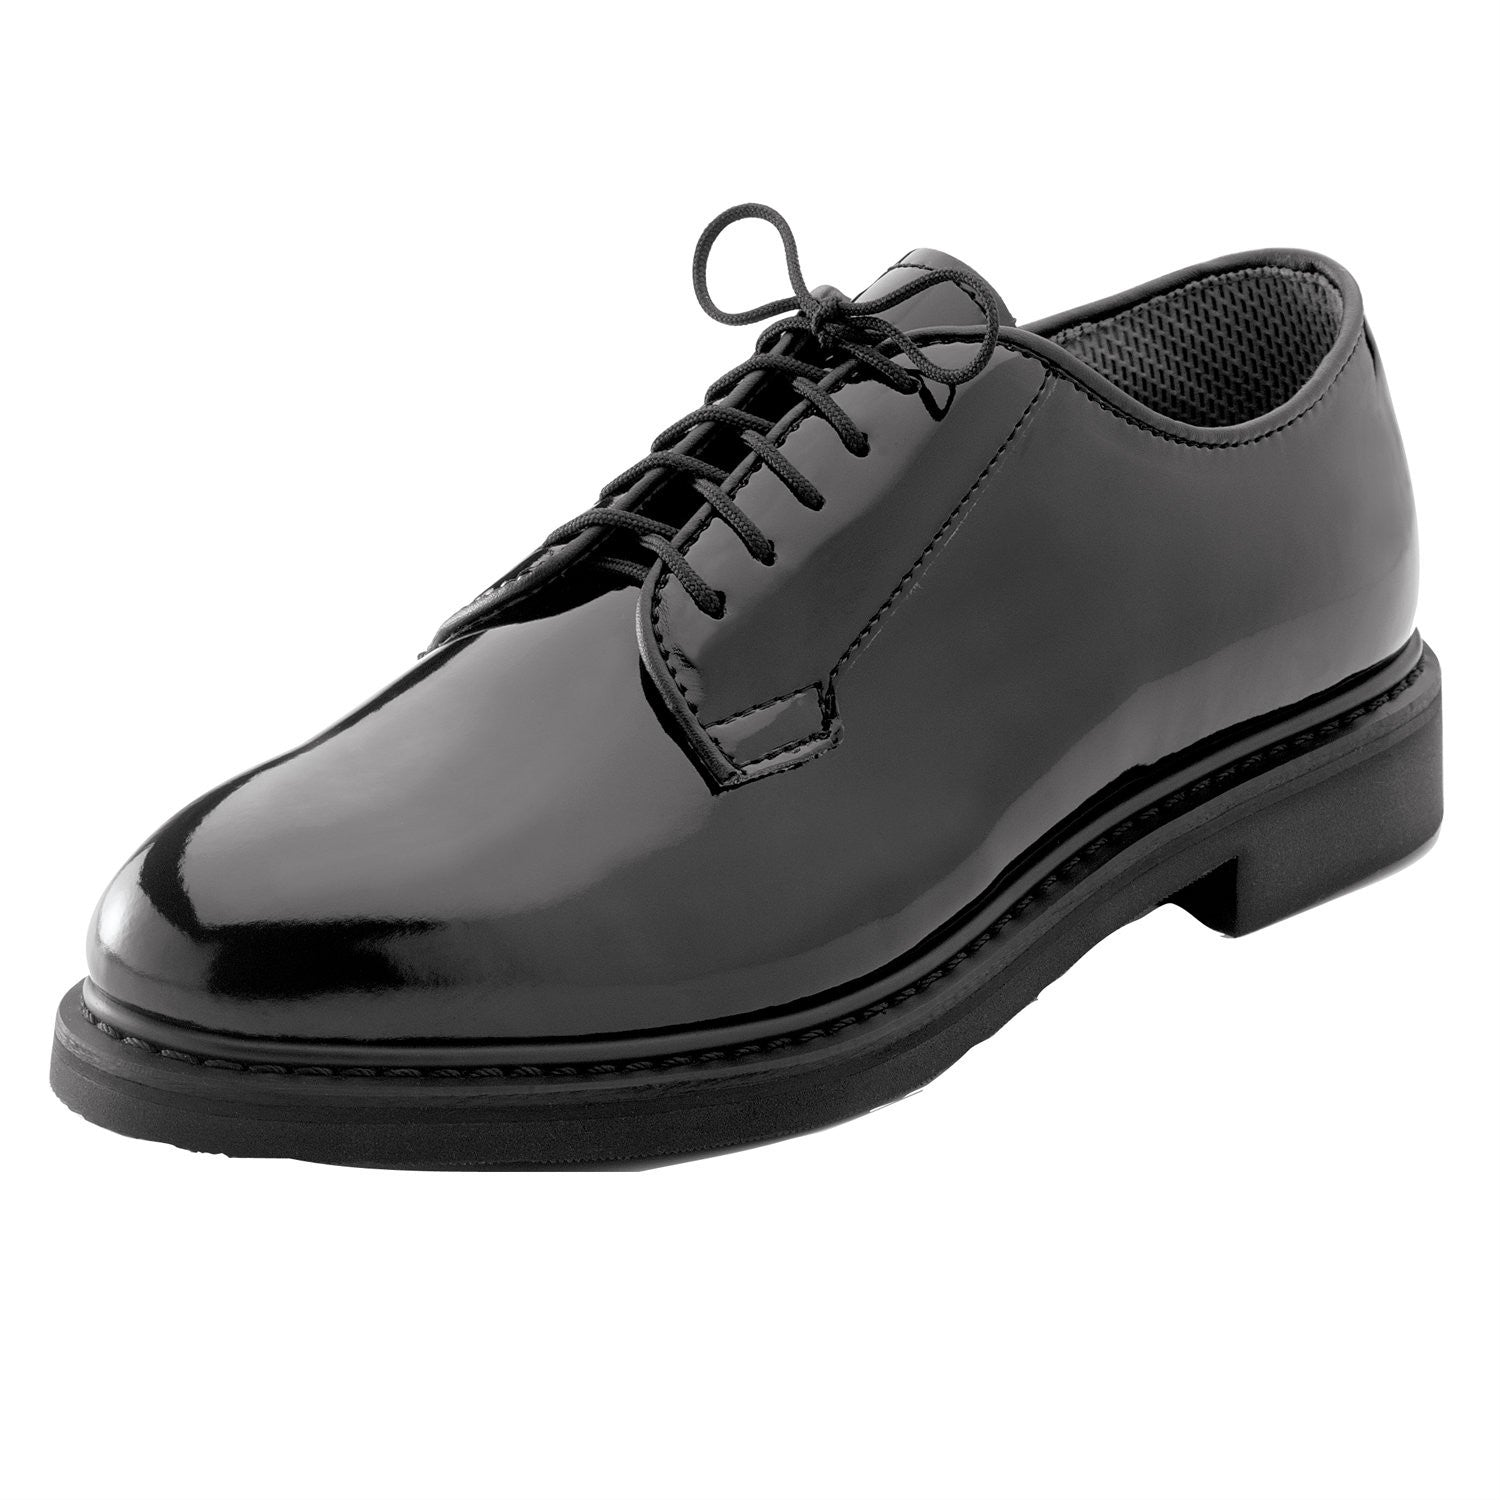 Uniform High Gloss Oxford Dress Shoe Black - Indy Army Navy